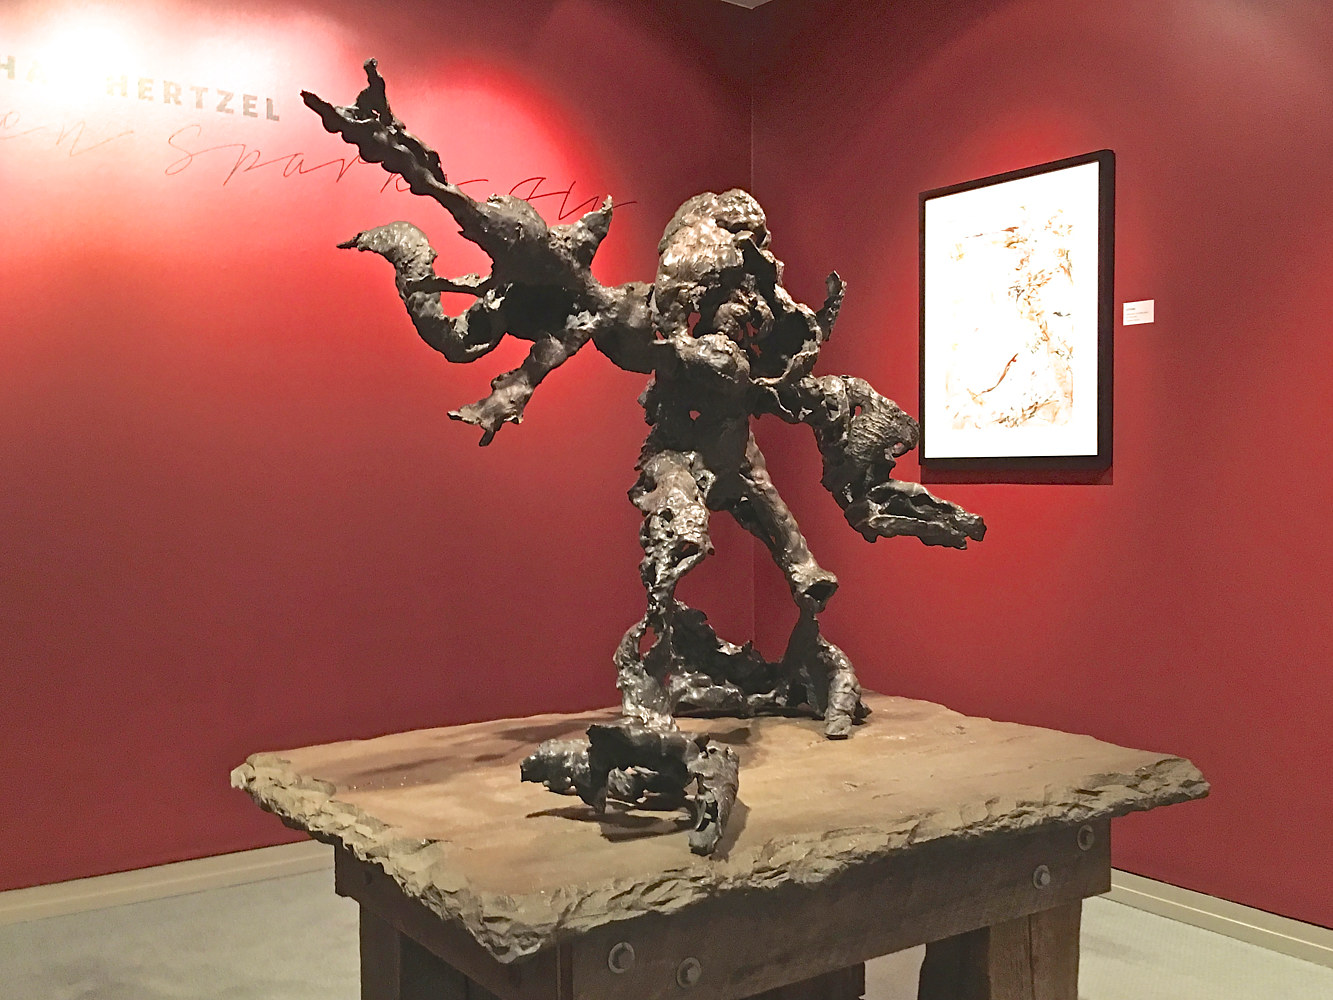 Adam Splitting; When Sparks Fly, Michener Art Museum, PA. by Jonathan  Hertzel